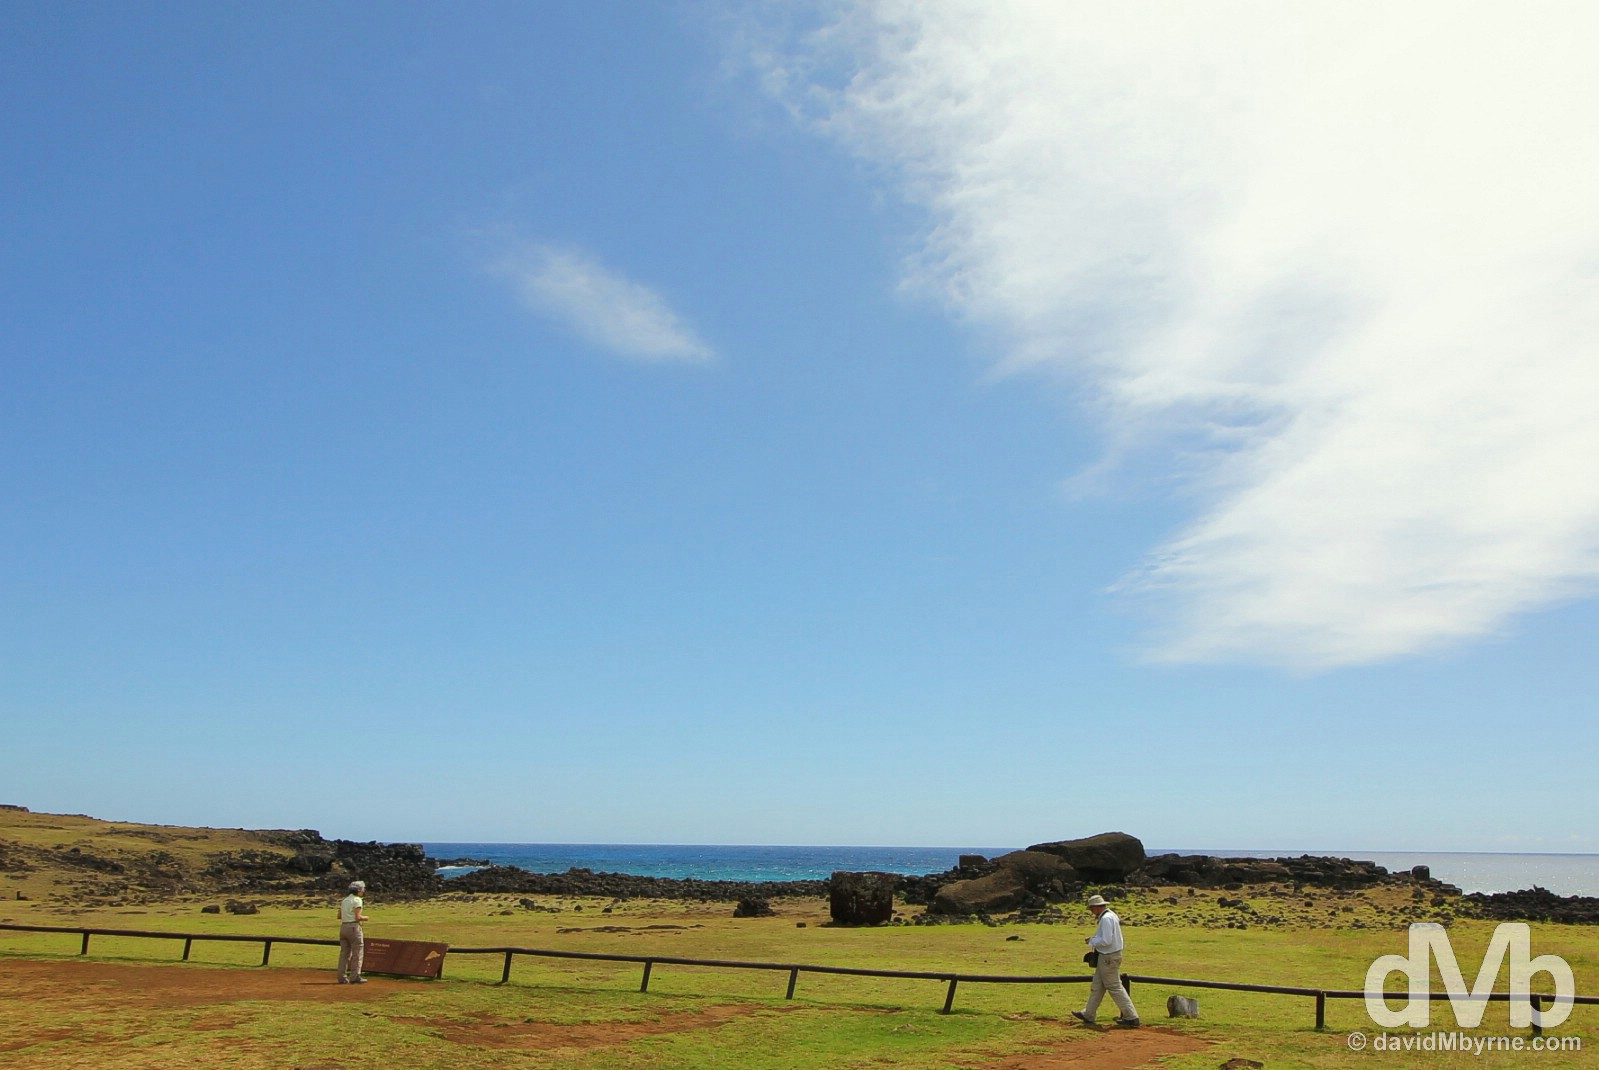 Fallen Te Pito Kura, the largest moai on Easter Island, Chile. October 1, 2016.